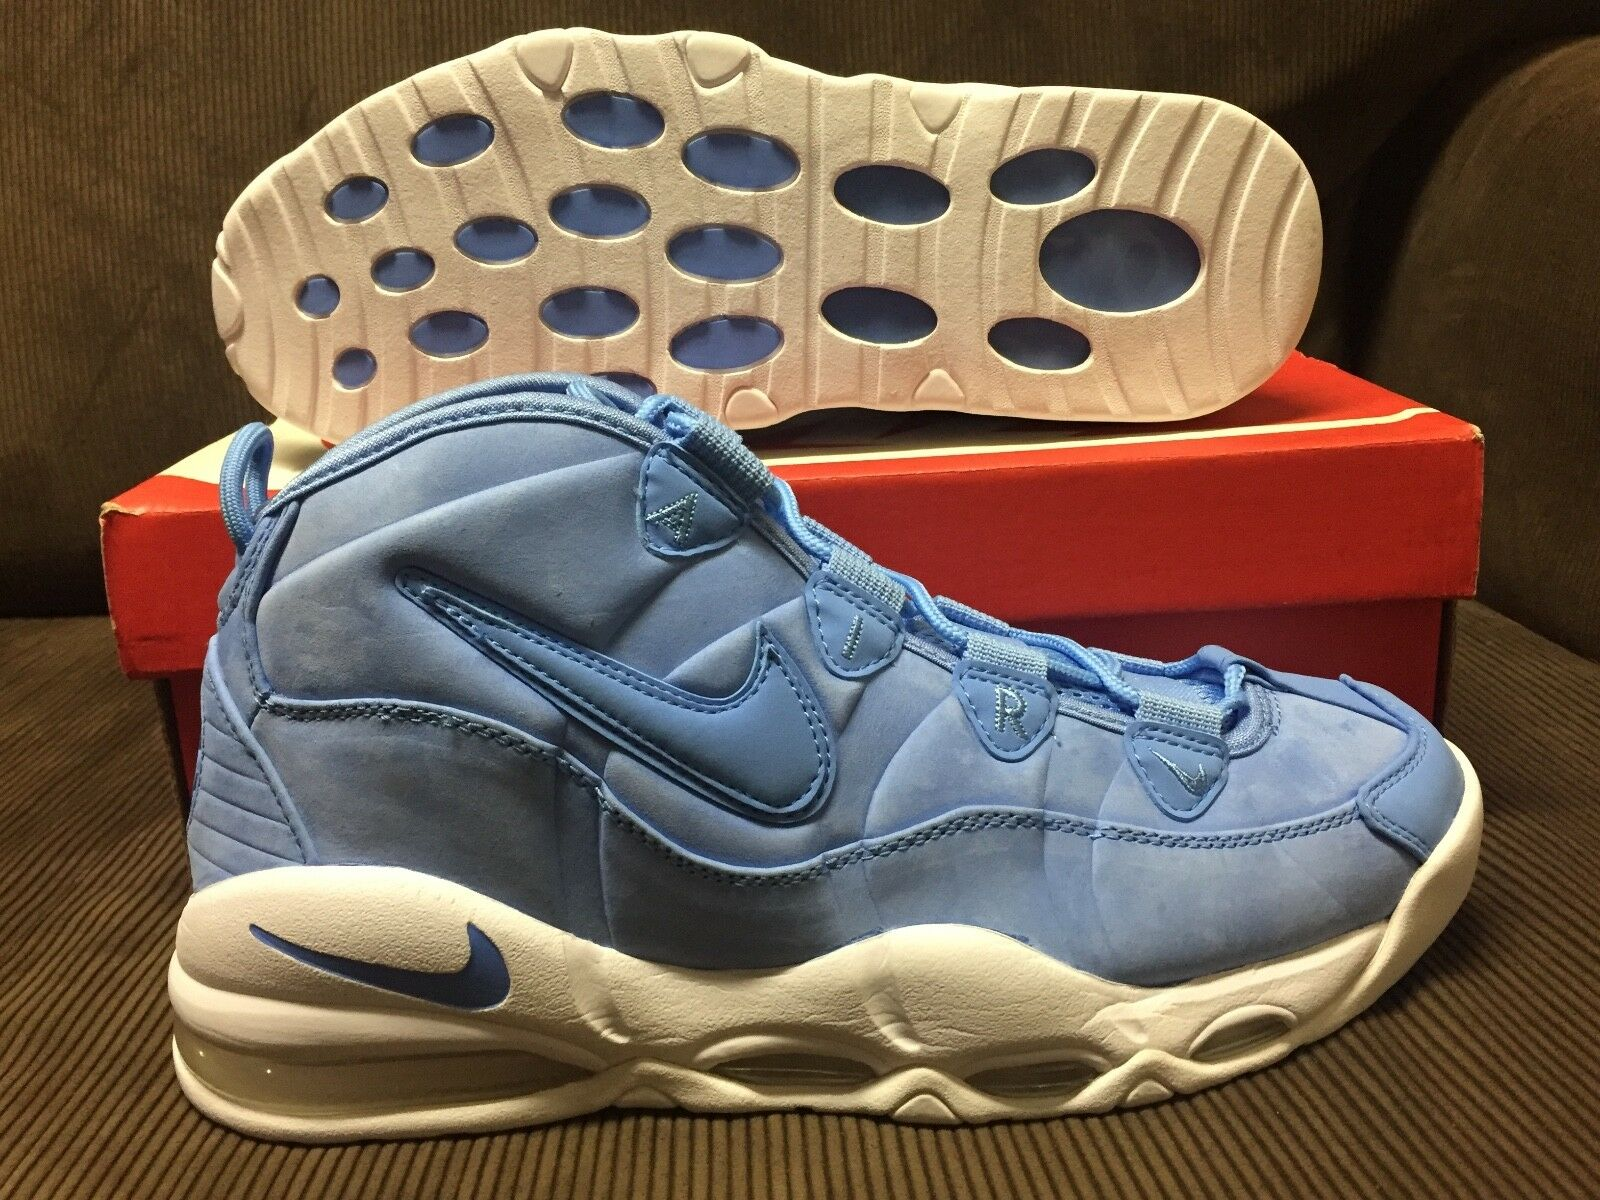 DS NIKE AIR MAX UPTEMPO 95 PIPPEN NBA CAROLINA UNIVERSITY BLUE/WHITE/ Price reduction best-selling model of the brand